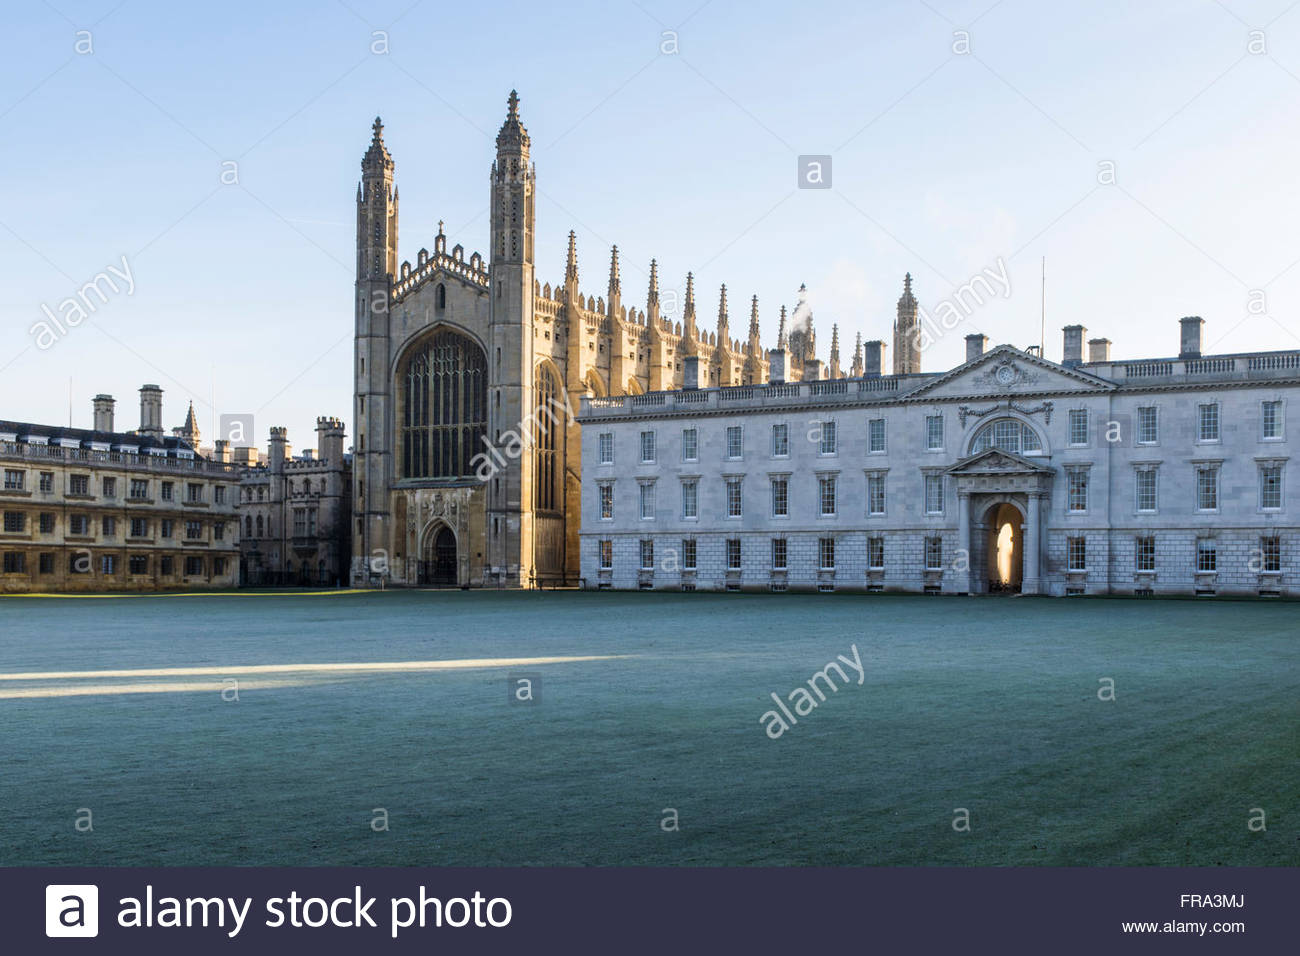 Early morning frost and long shadows on the lawns in front of Kings College Chapel in Cambridge - Stock Image